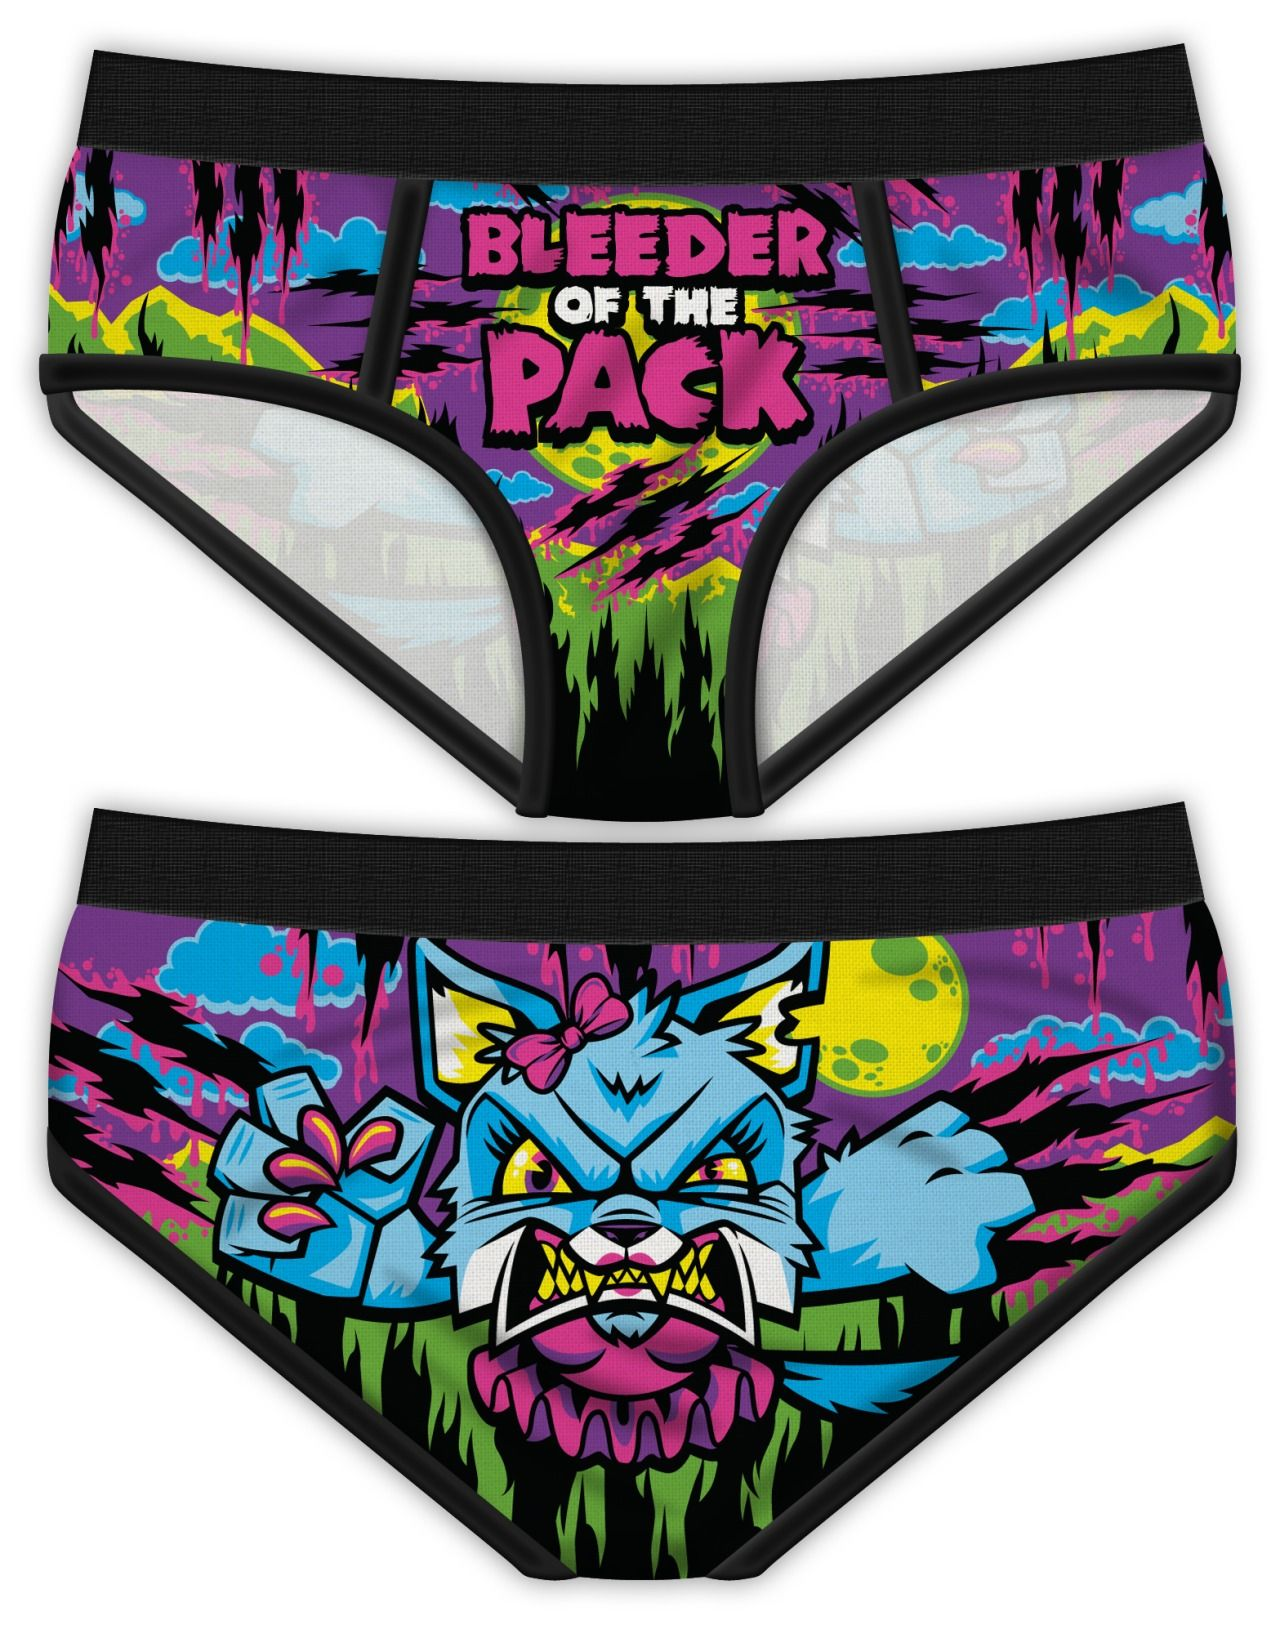 Baby Briefs Underwear Knickers Cute Boxer New Kids Underpants Girls Shorts BH LY